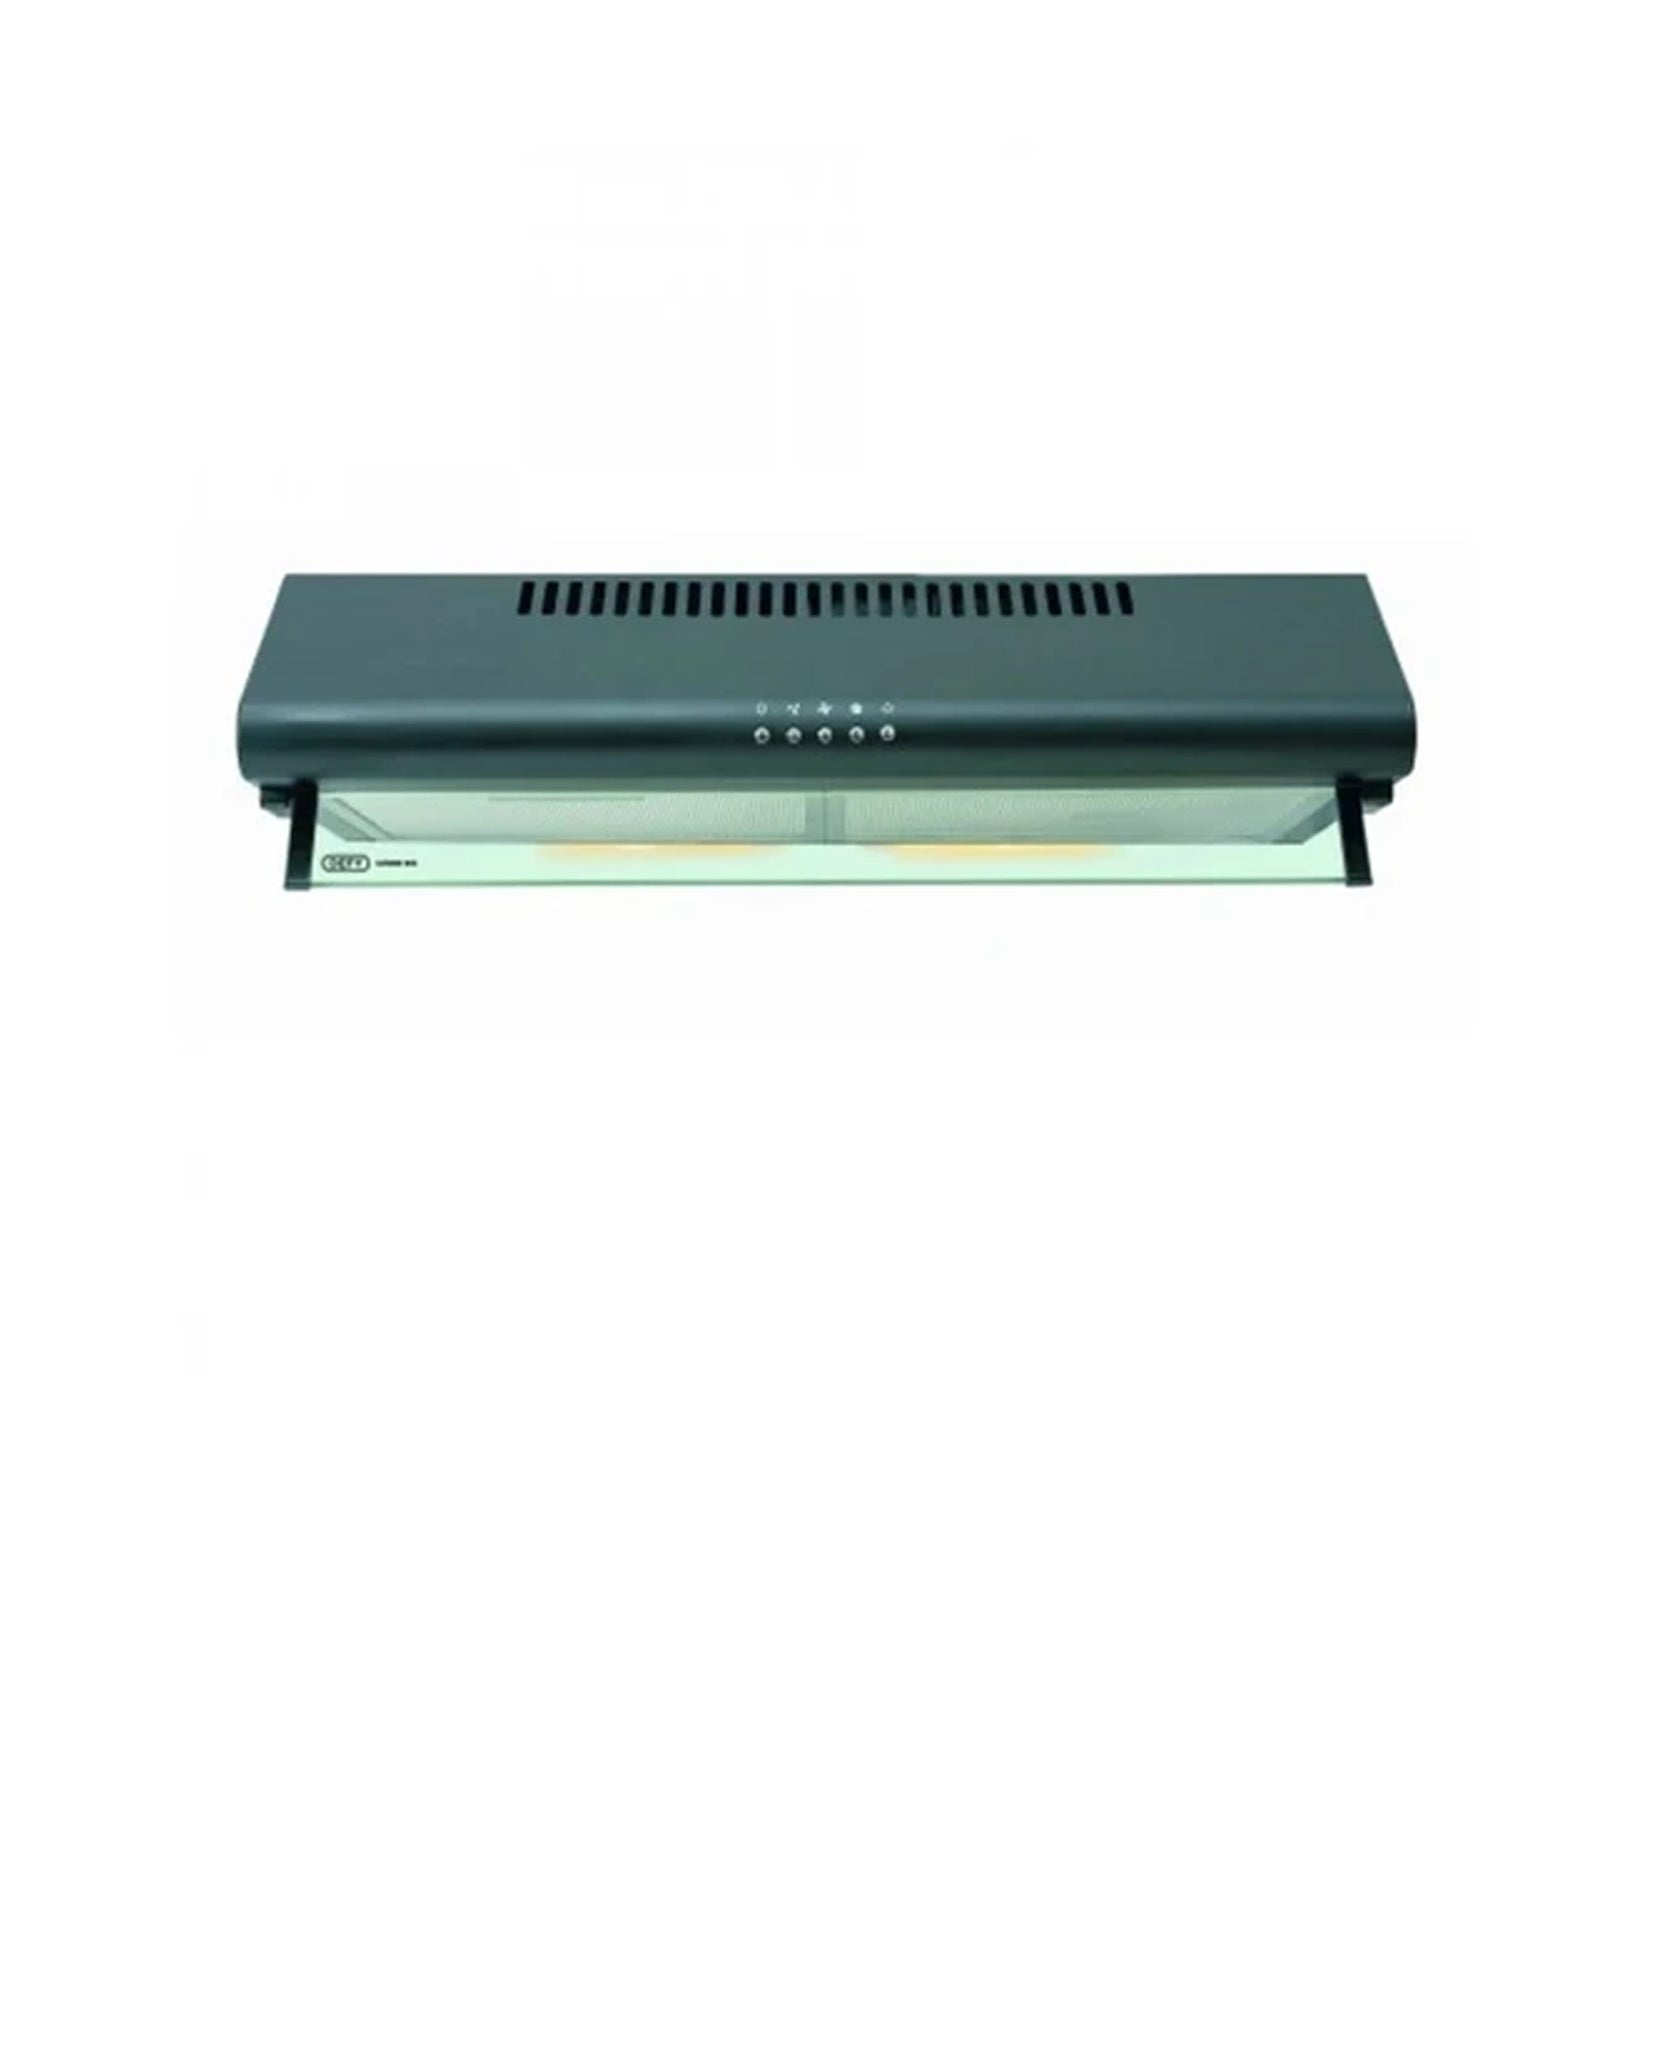 Defy Slimline Cooker Hood Black DCH290 (On Promo)